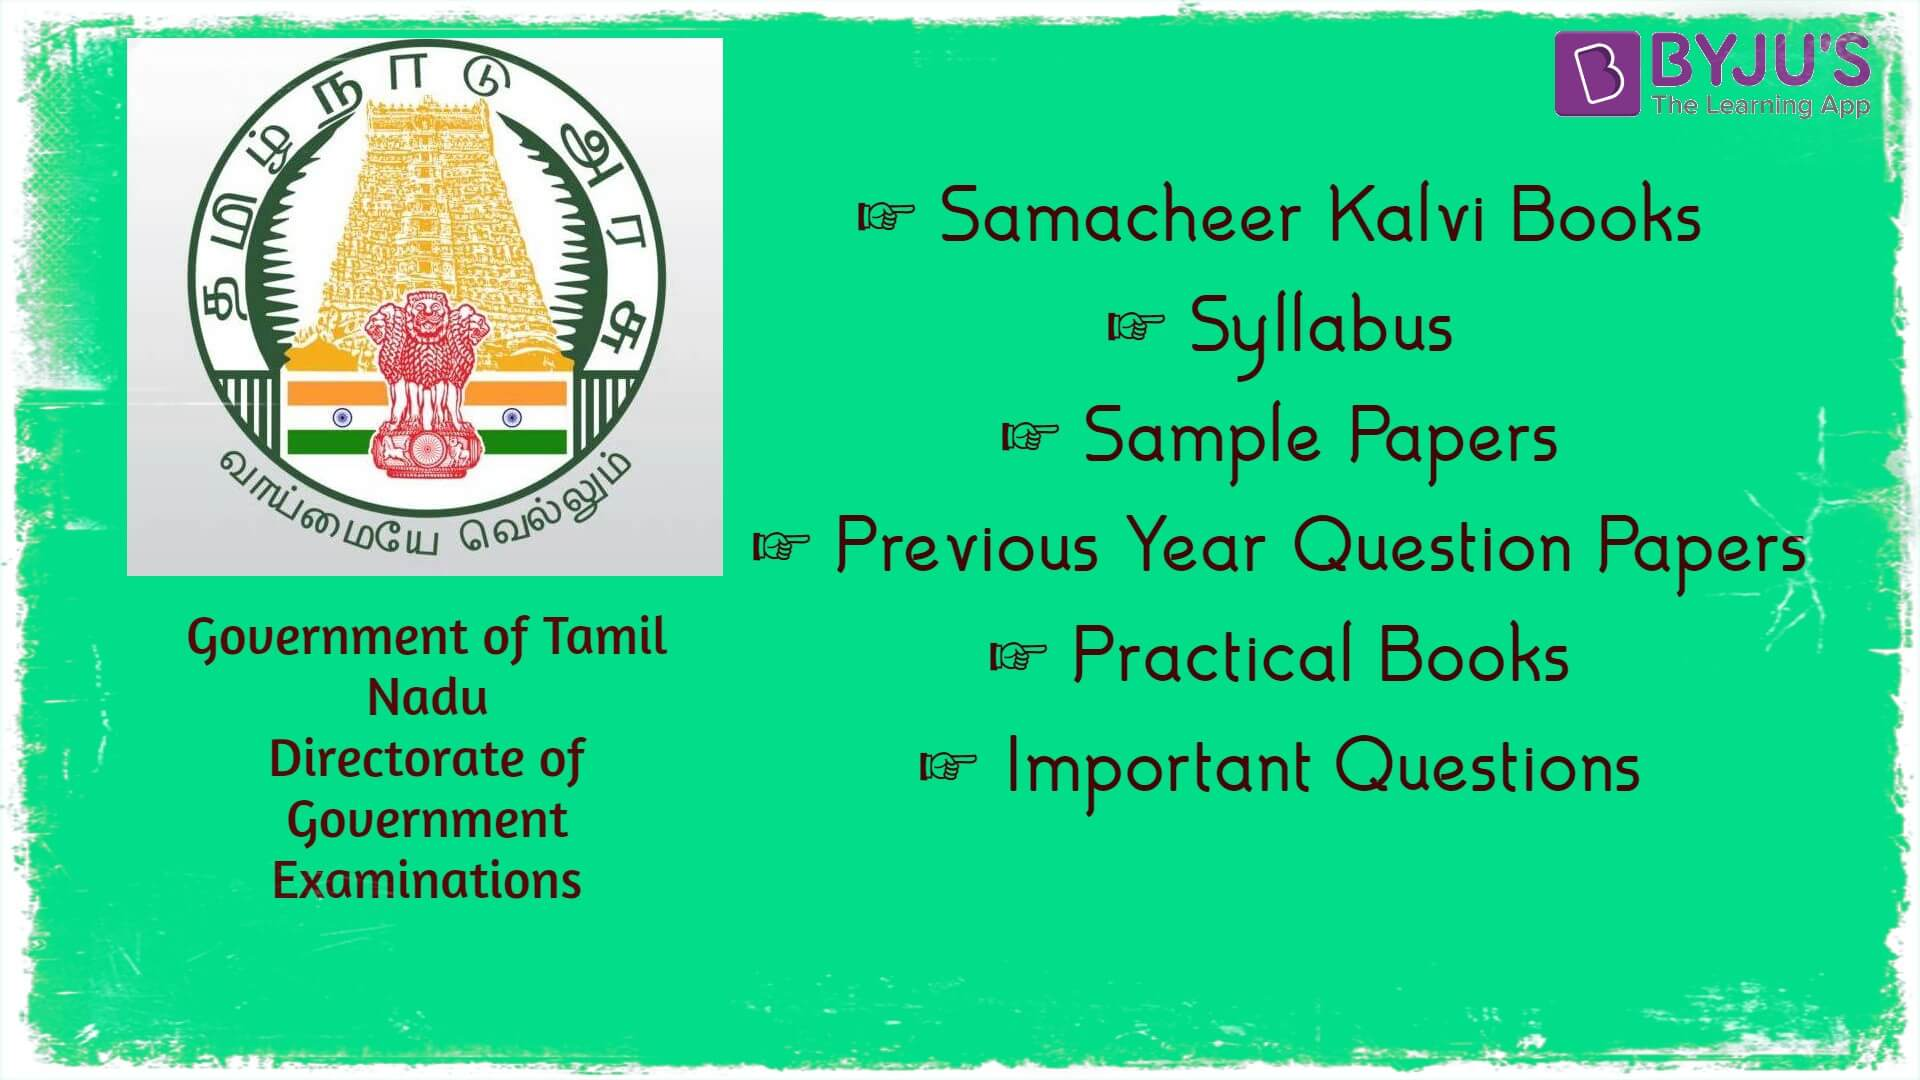 Tamil Nadu State Education Board